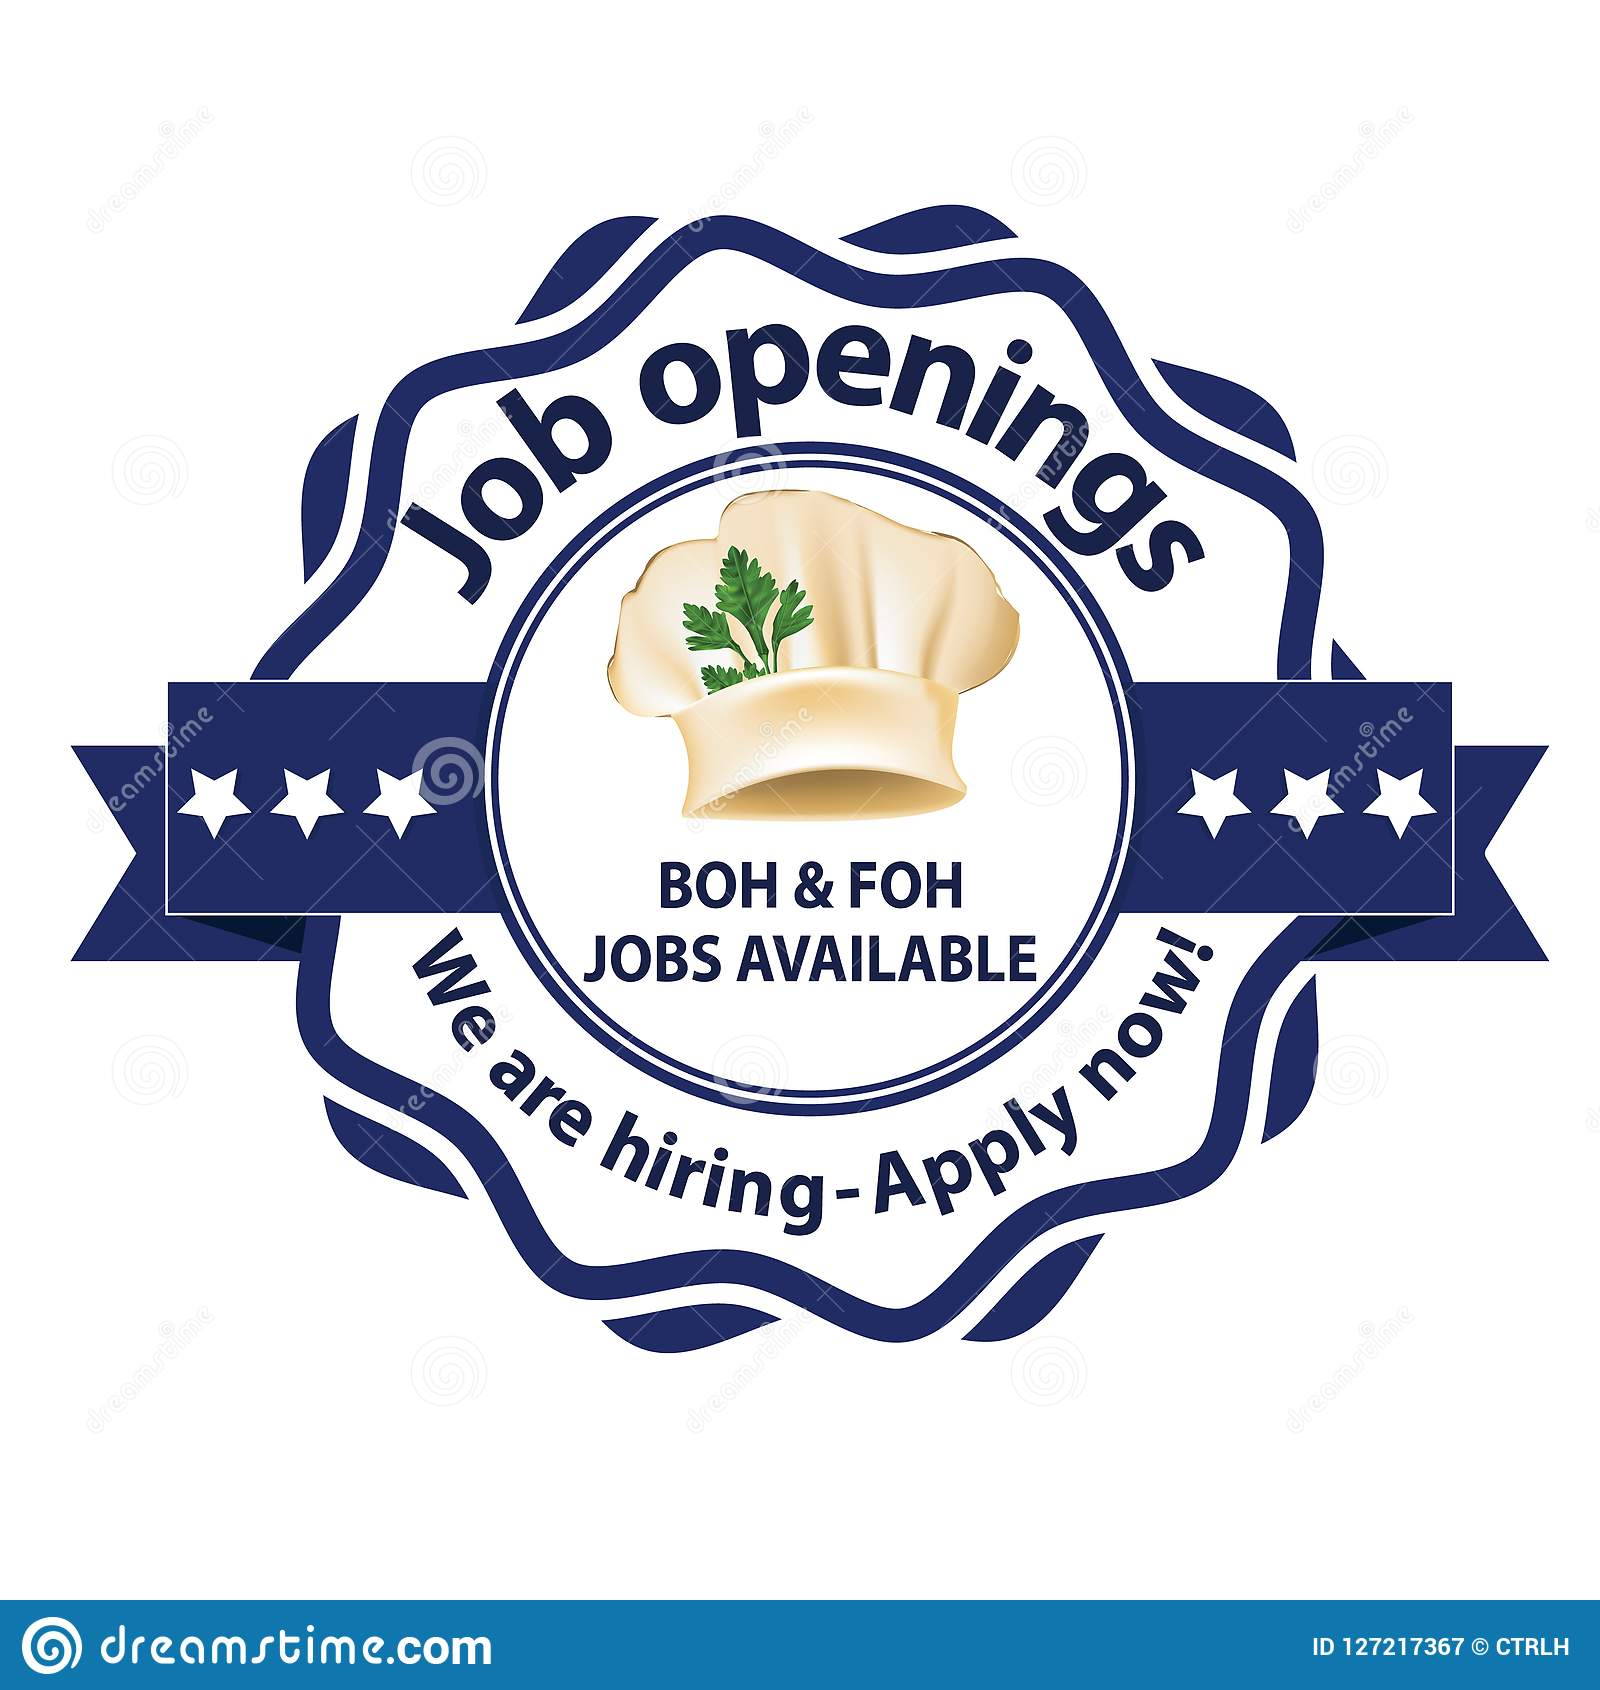 7f3d1206d2d6 We Are Hiring BOH And FOH Jobs Available For Immediate Start